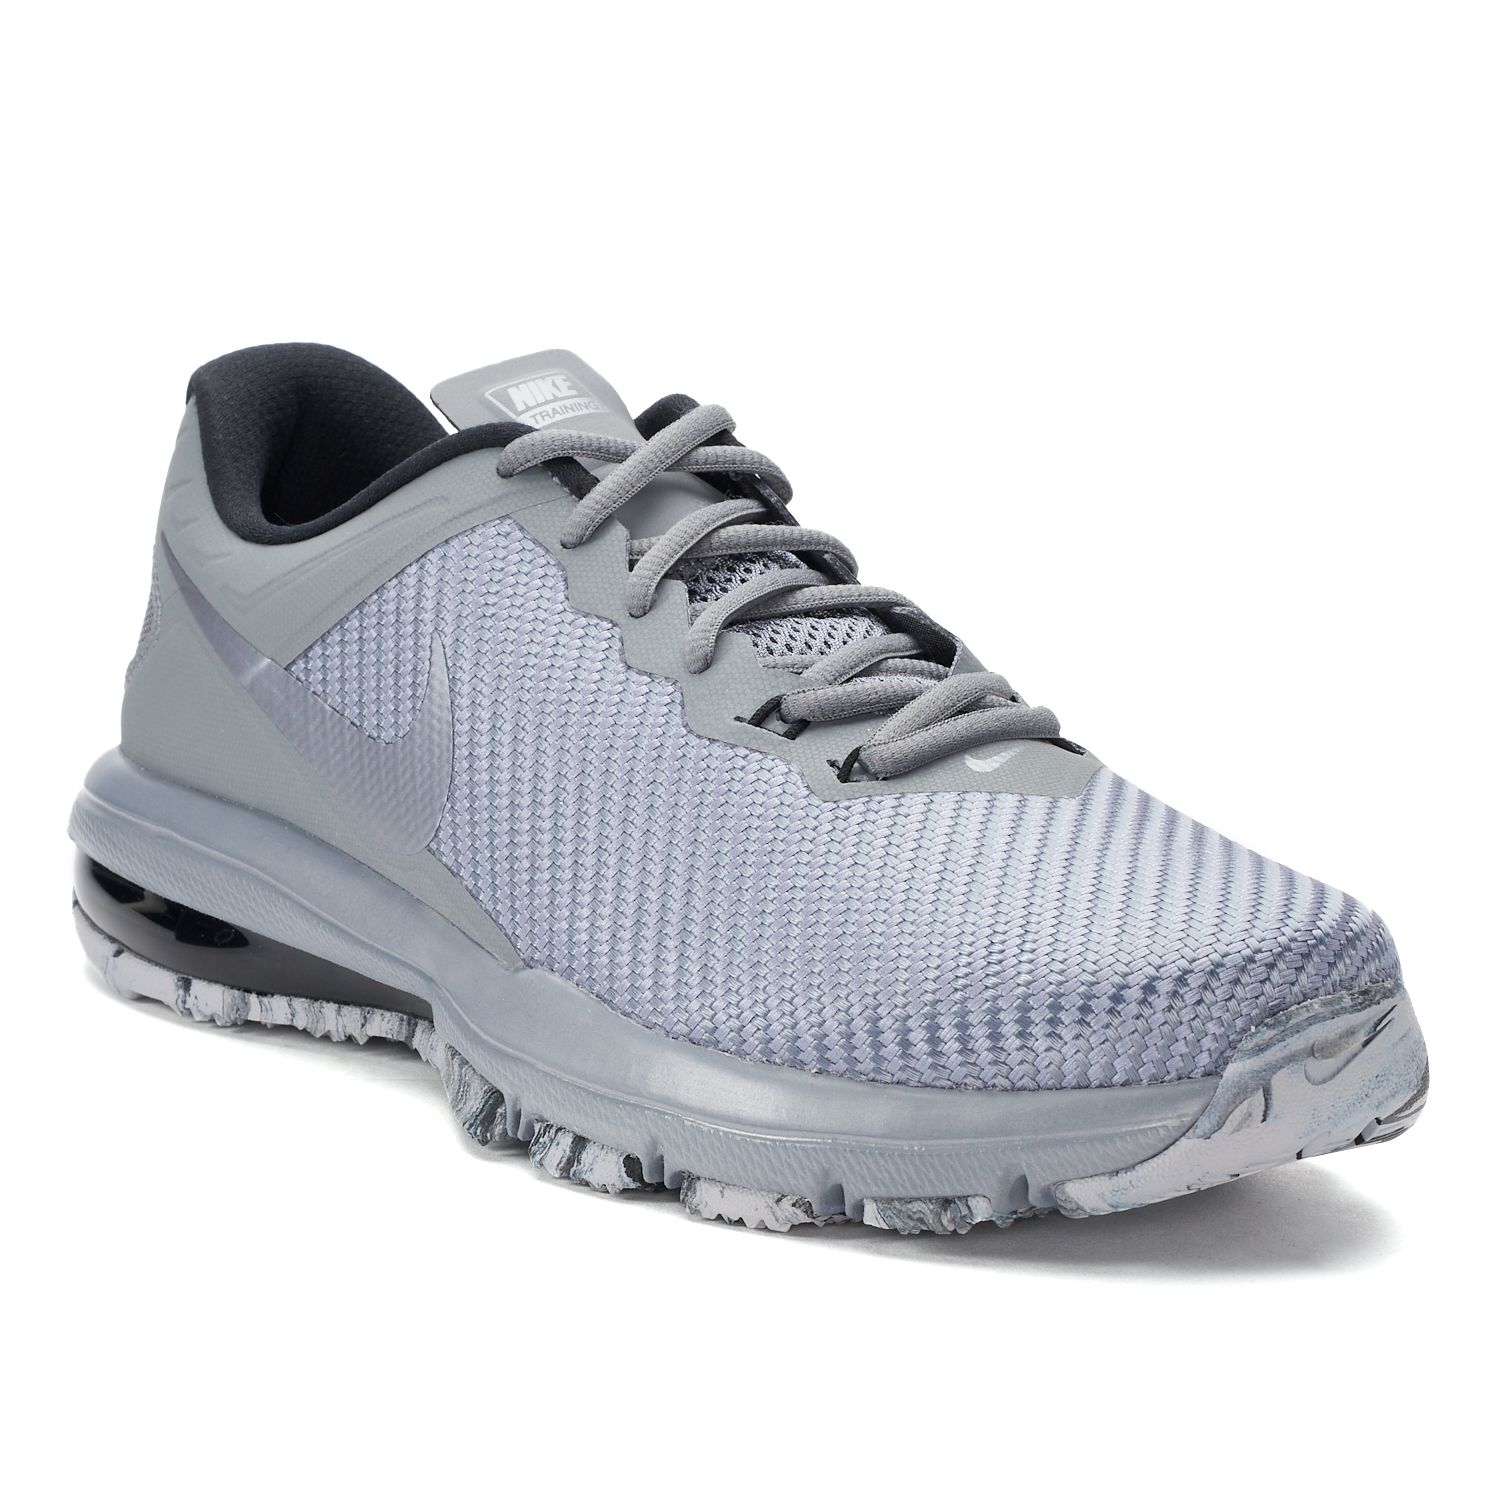 Nike Air Max Full Ride TR 1.5 Men\u0027s Cross Training Shoes